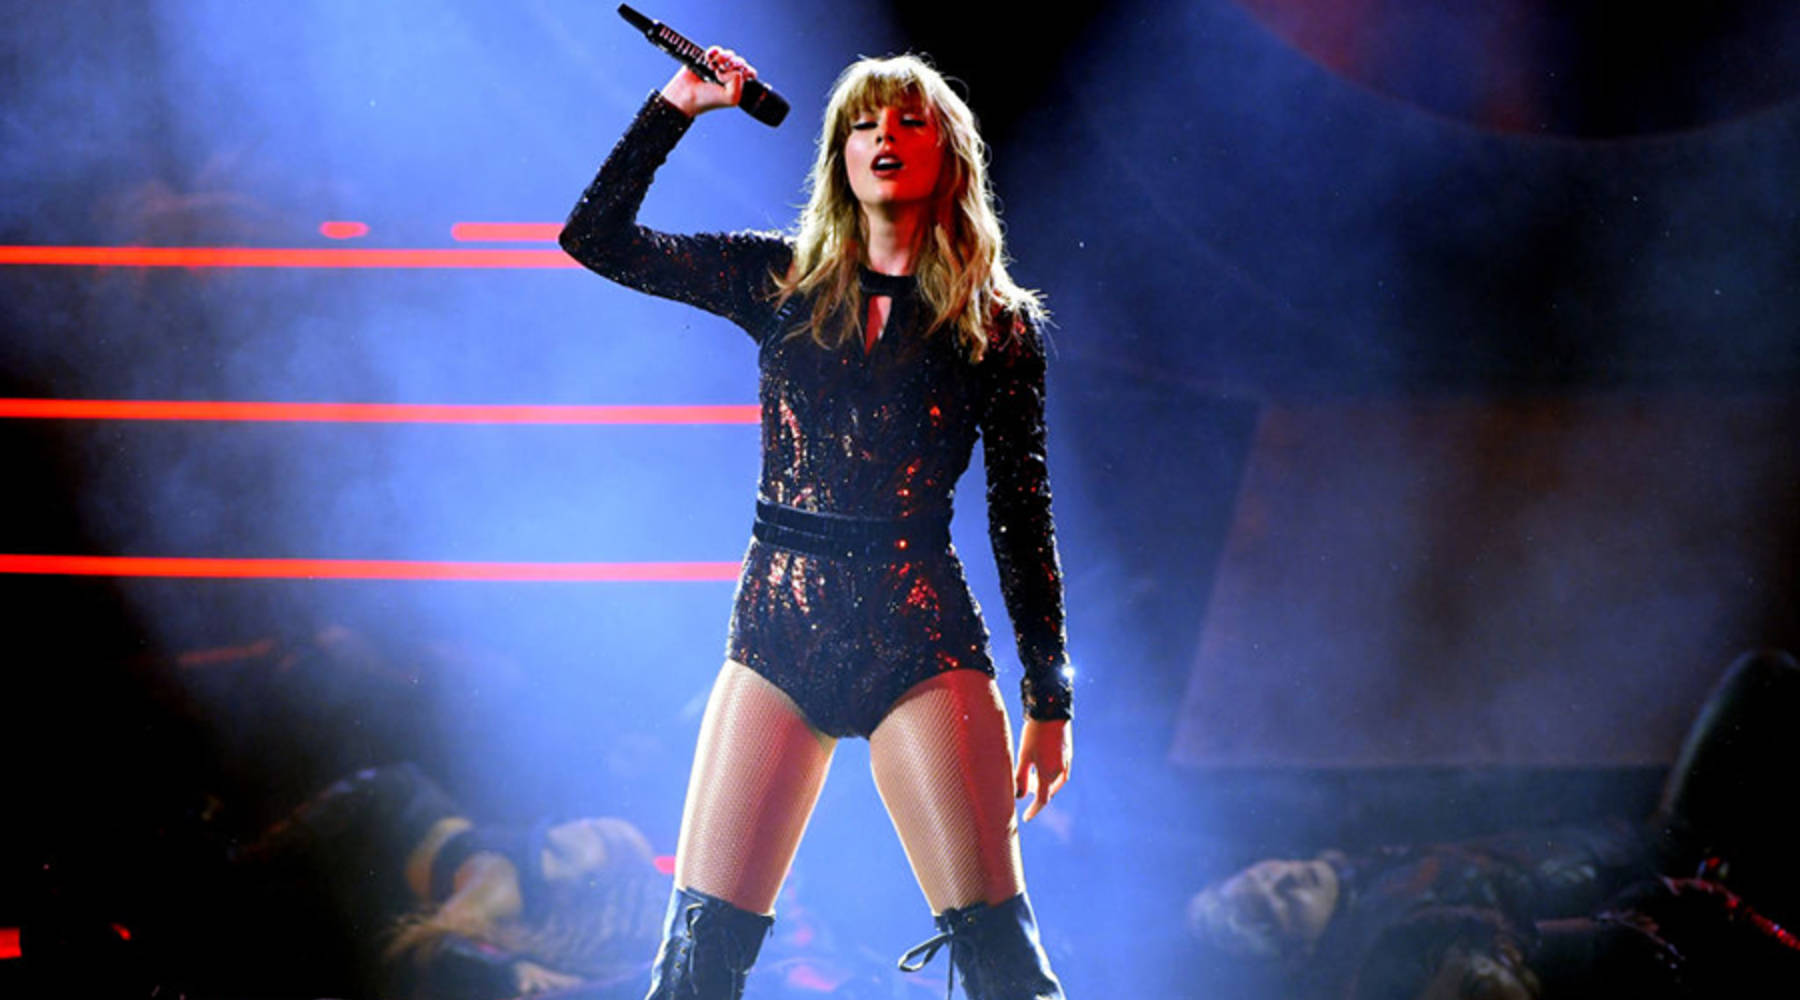 Taylor Swift Concert Wallpapers - Taylor Swift Concert Wallpapers